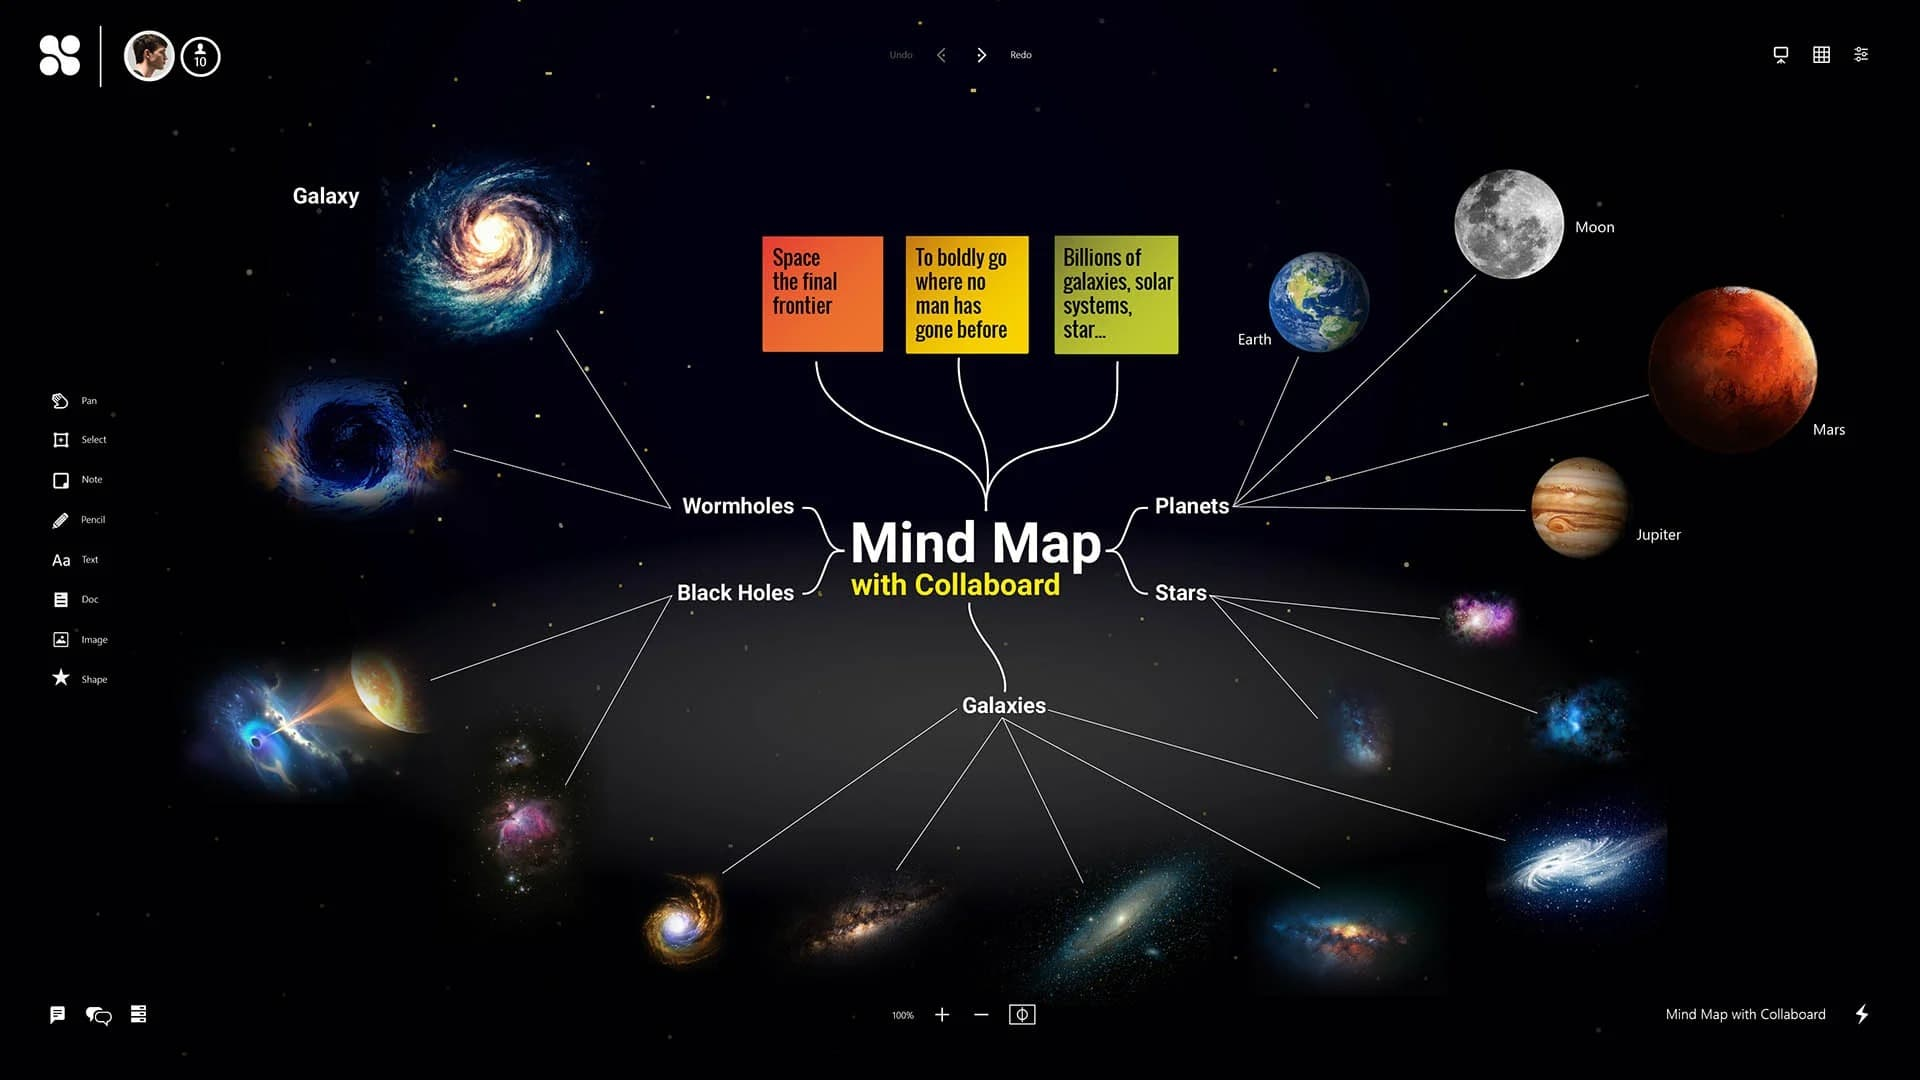 Create mind maps: Insert note cards, text, and shapes, upload images, documents, videos, and connect them. Teams can easily and creatively develop mind maps together on one board and in real-time.